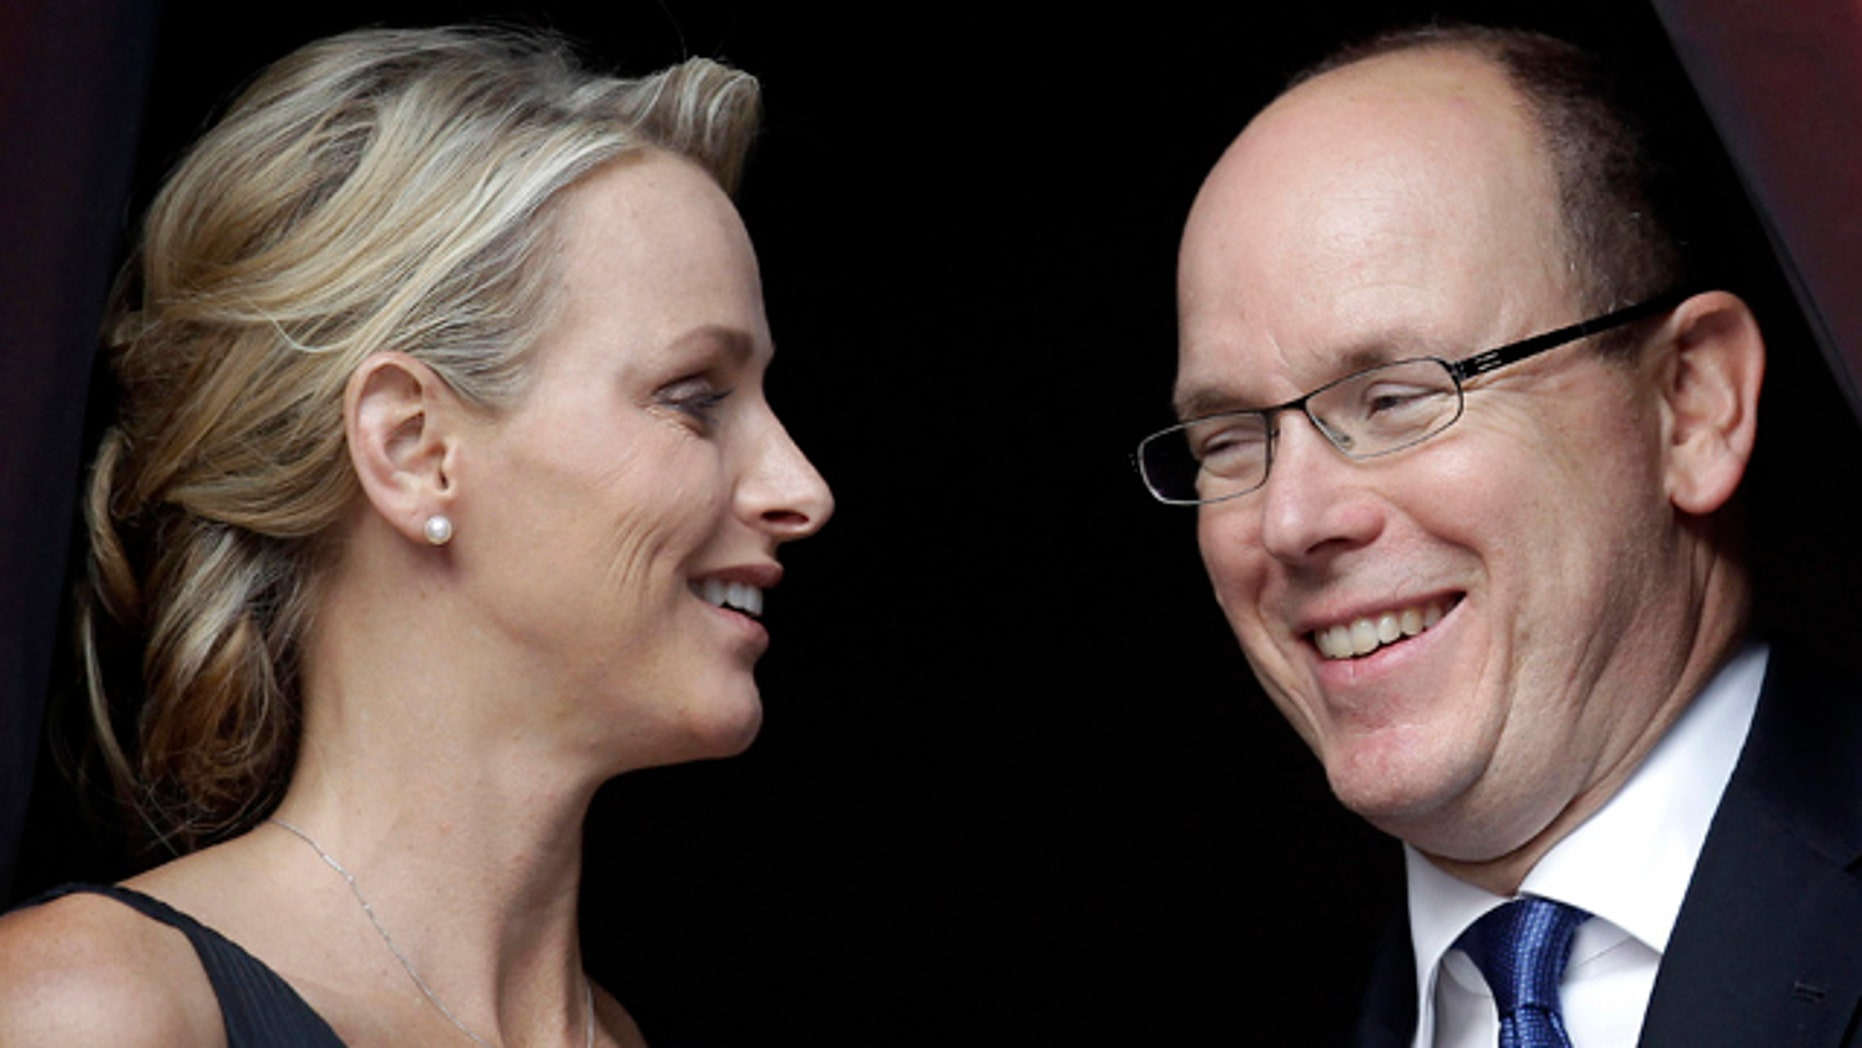 June 23: Prince Albert II of Monaco and his fiancee Charlene Wittstock attend the St. Jean Religious Parade in Monaco.